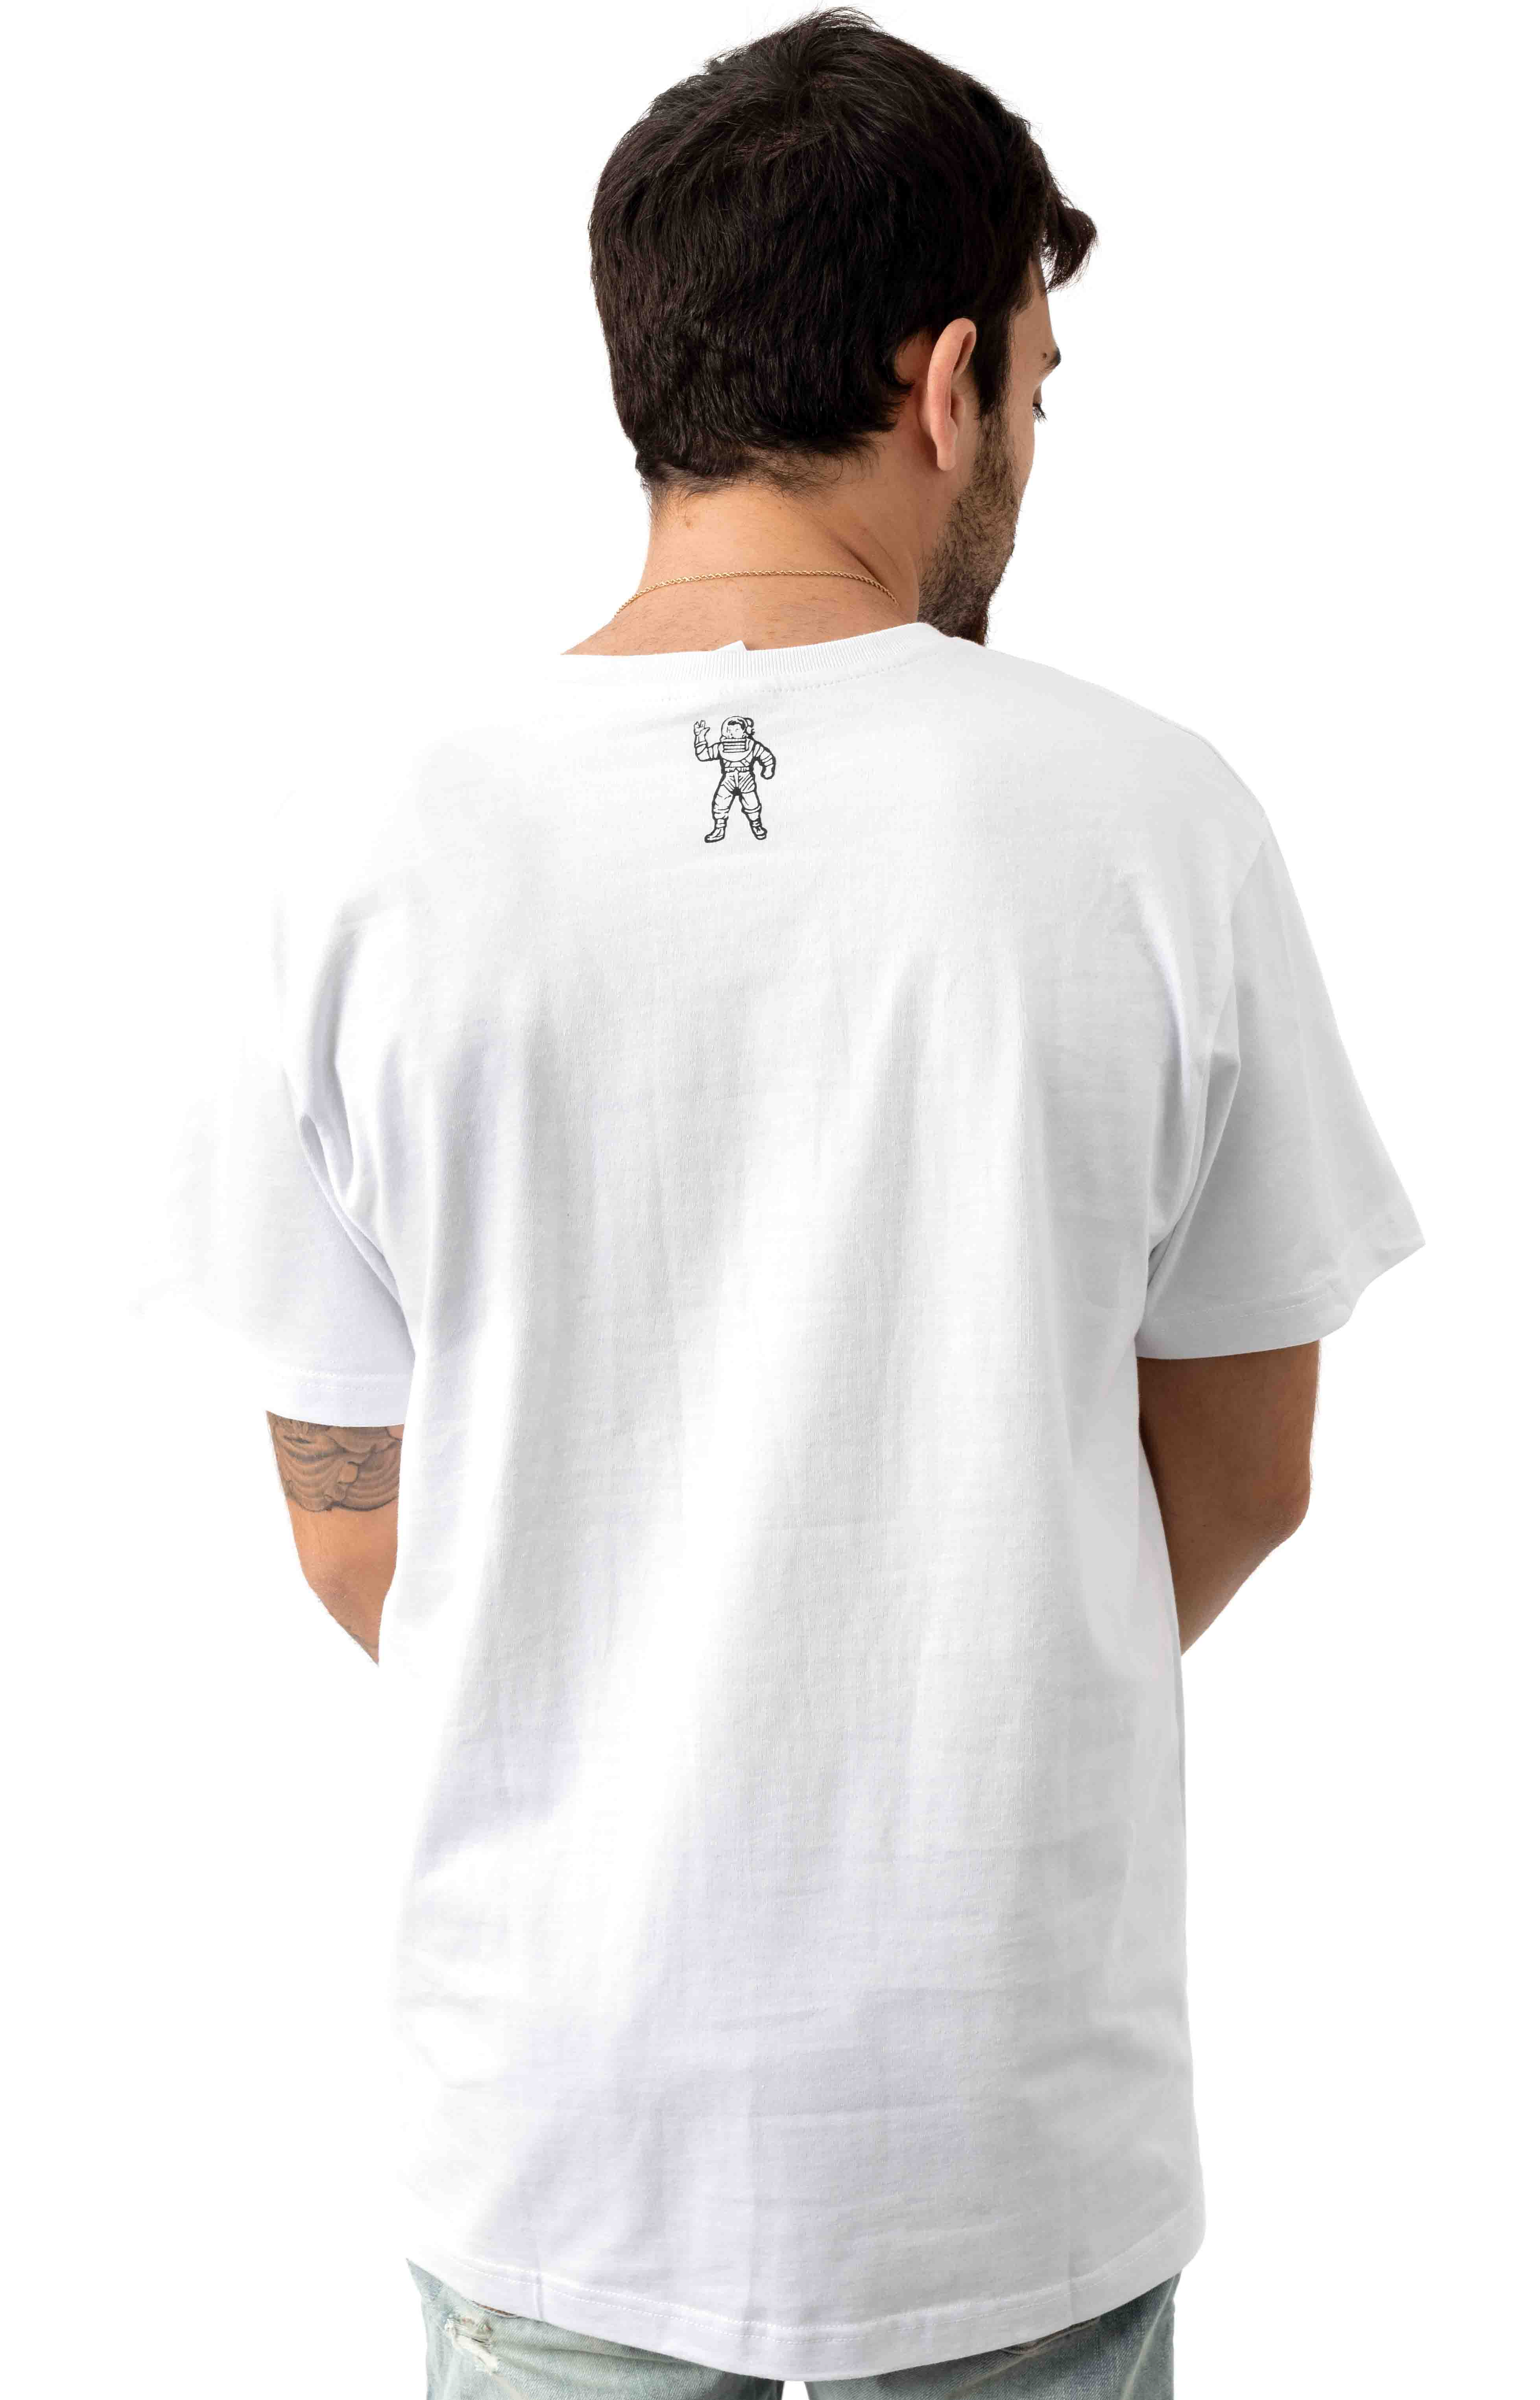 BB Recovery T-Shirt - White  3